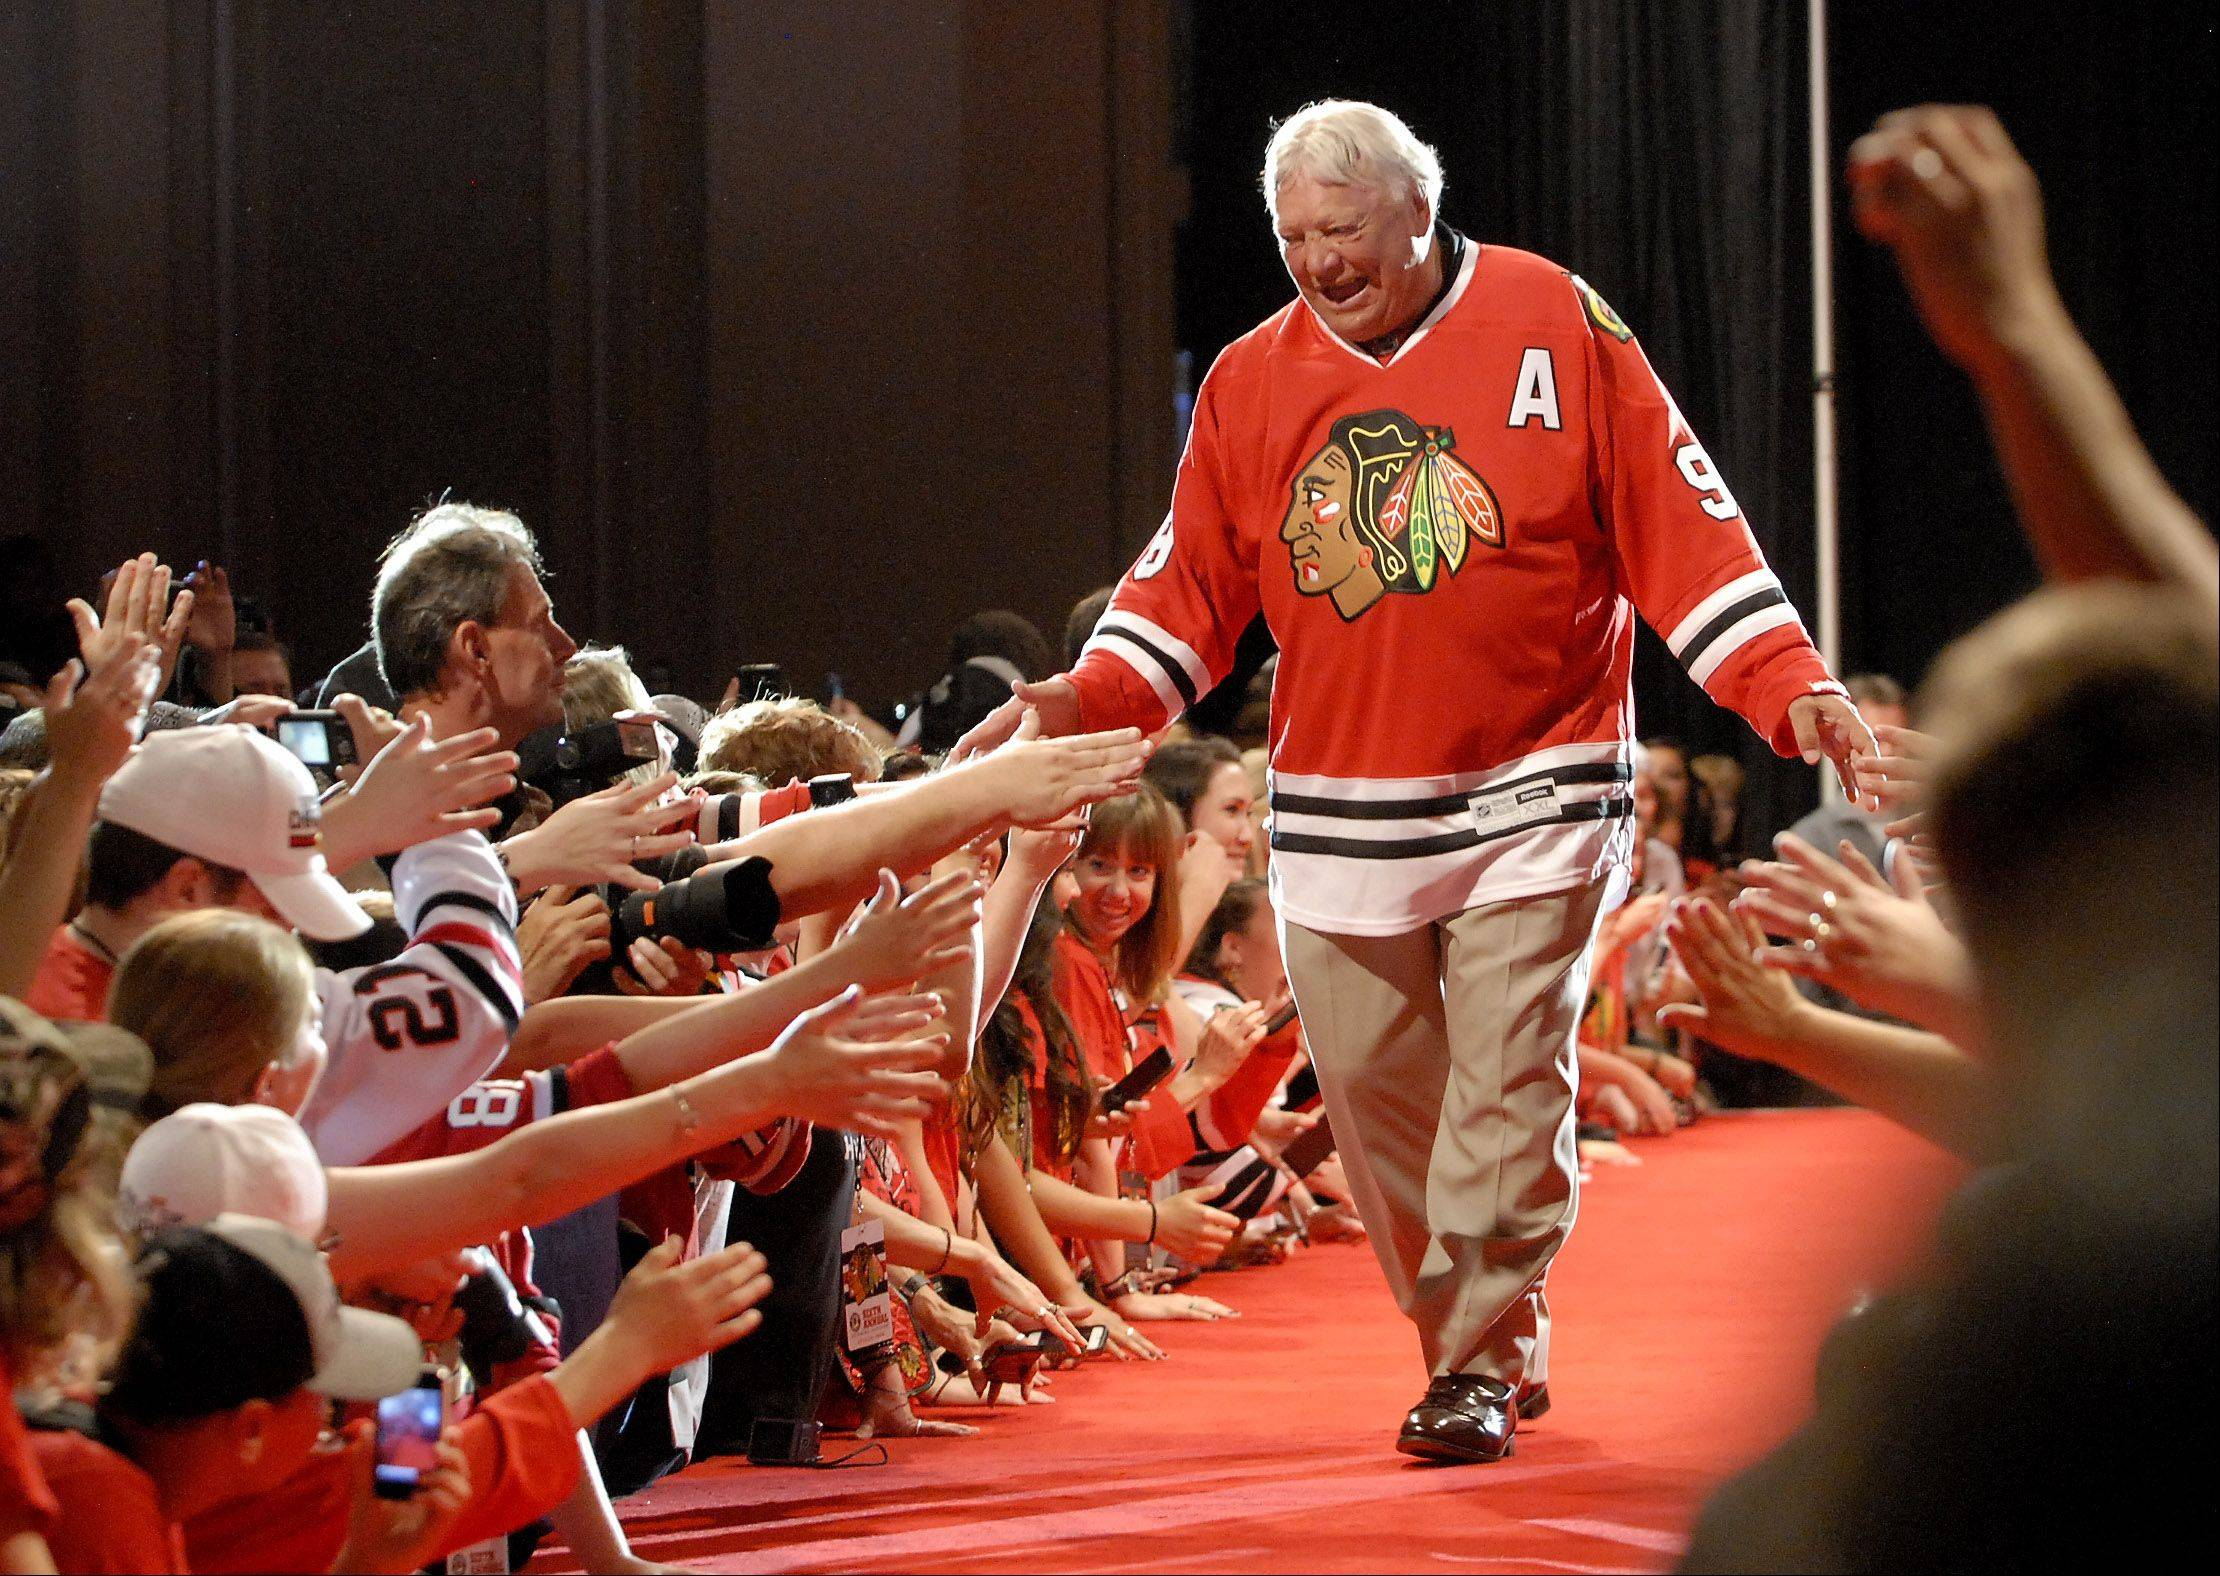 Blackhawk legend Bobby Hull is introduced.